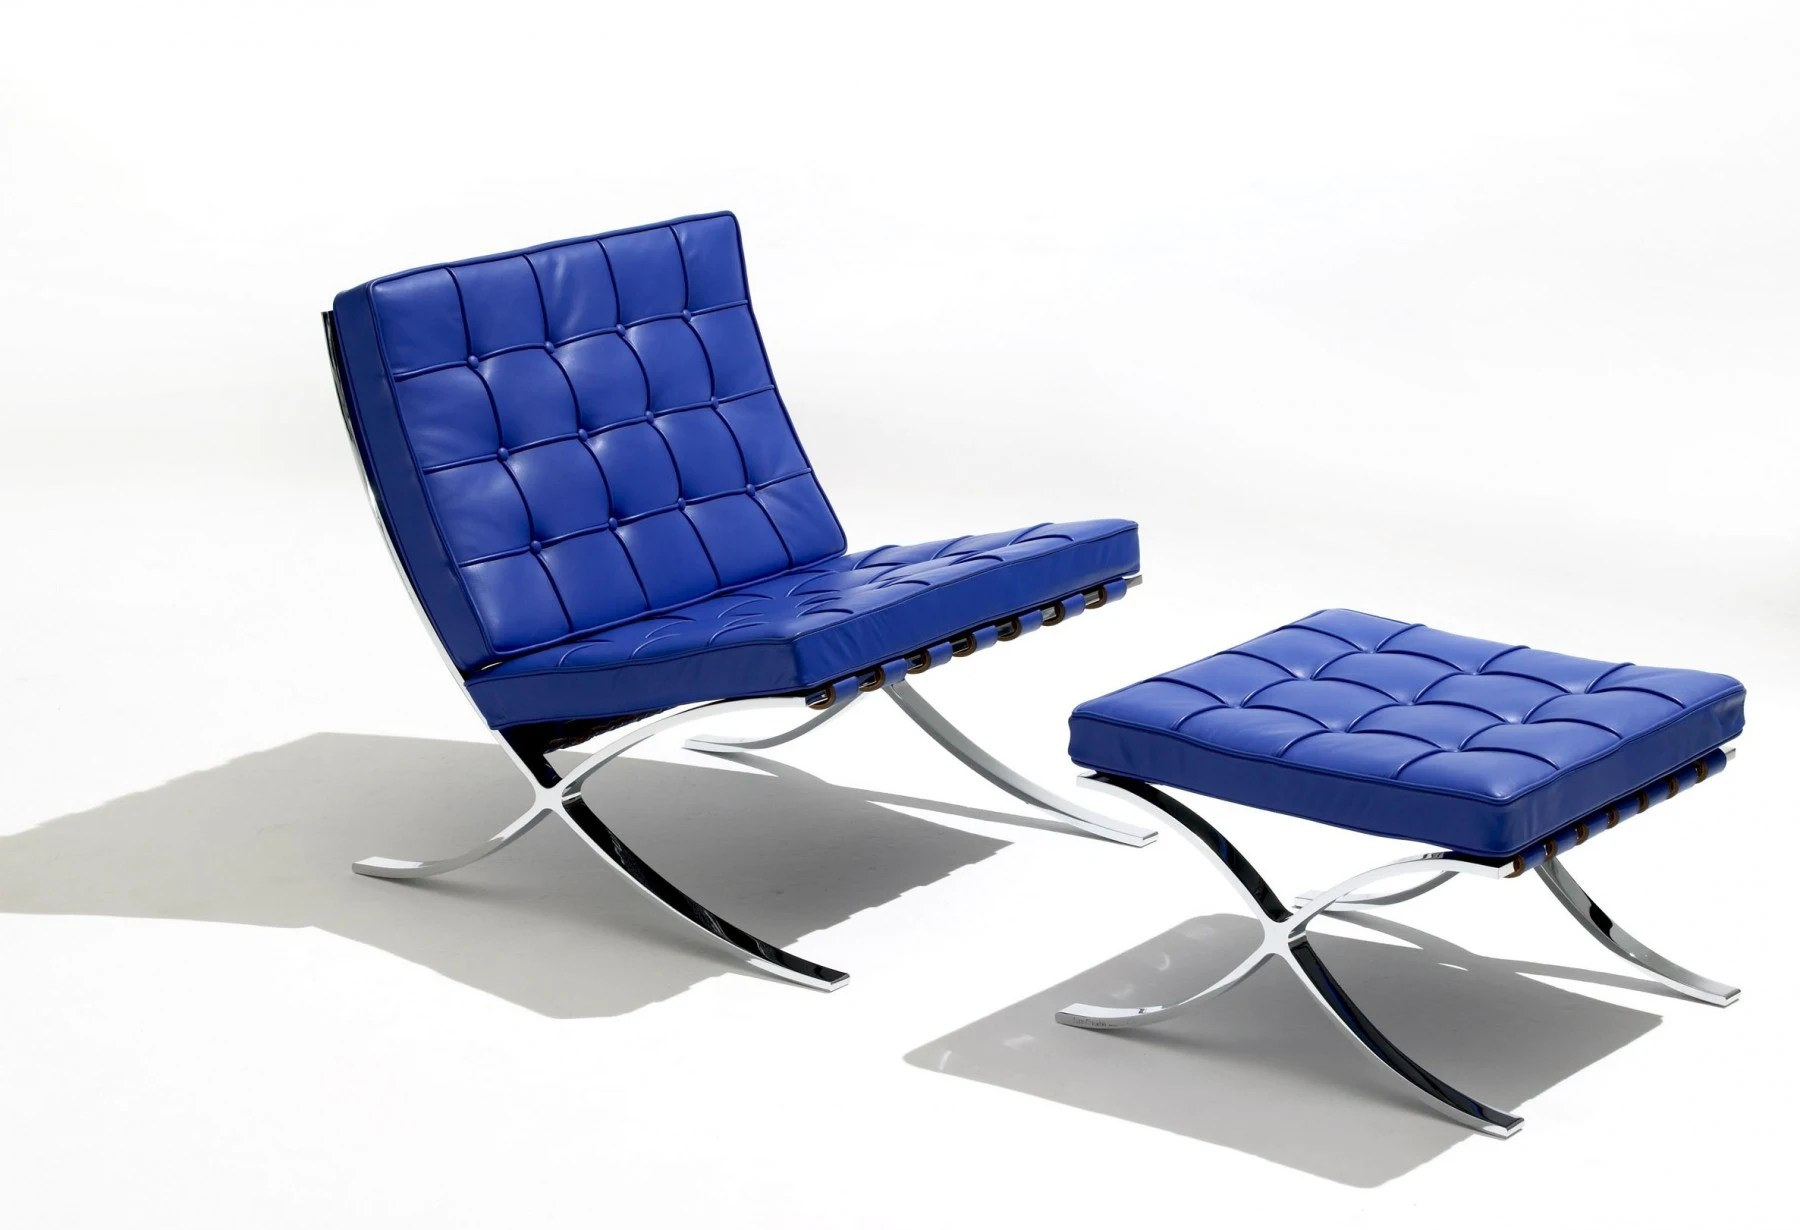 Barcelona Lounge Chair Knoll Ludwig Mies Van Der Rohe Barcelona Lounge Chair